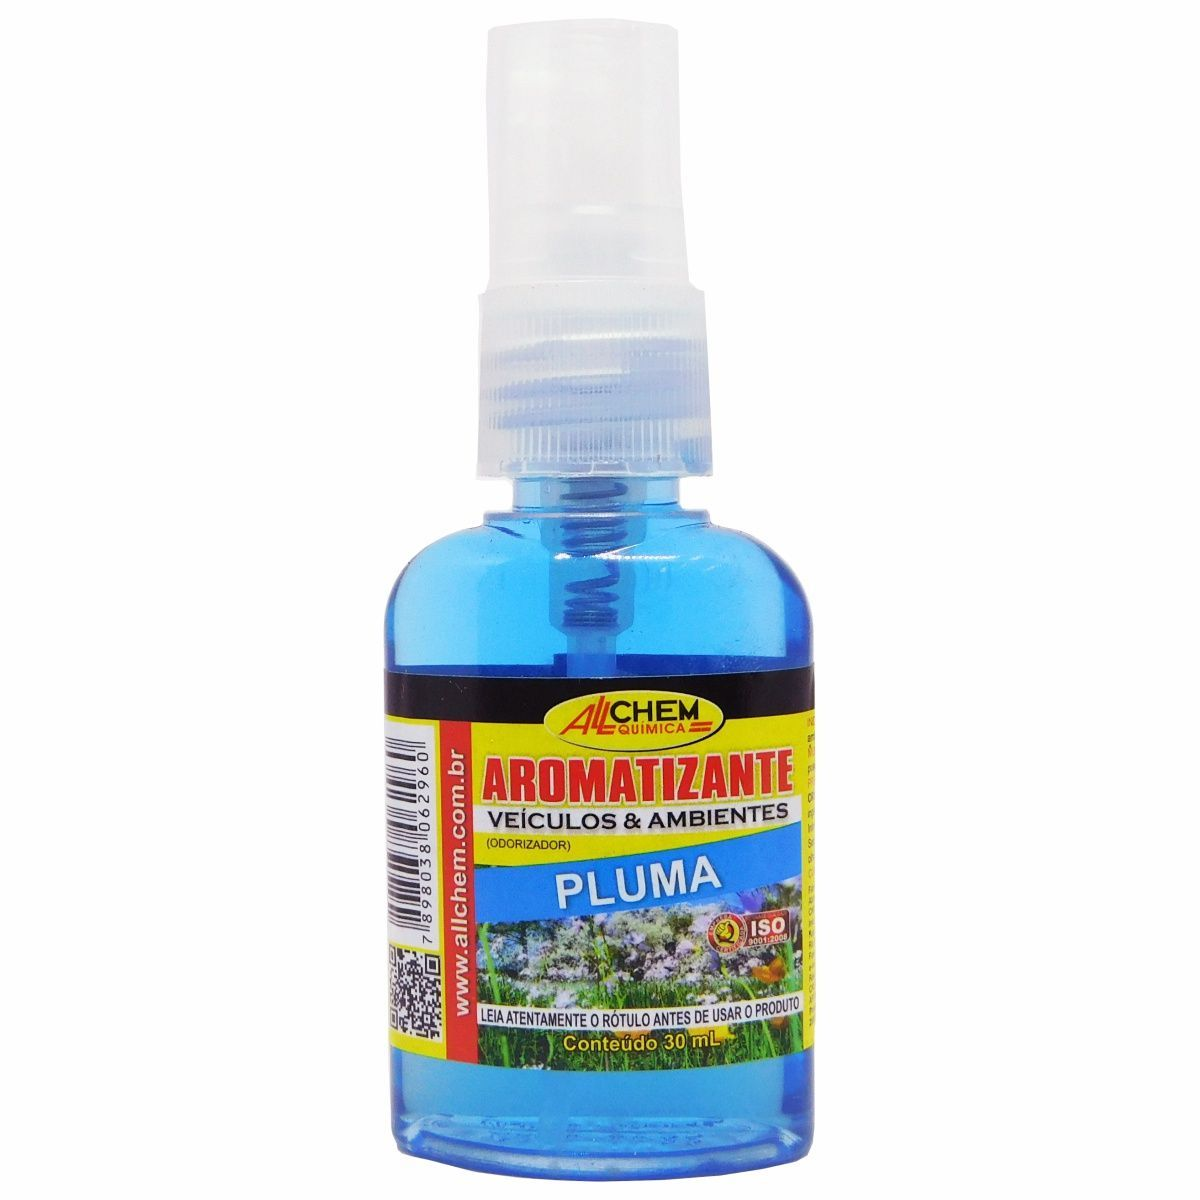 aromatizante-pluma-spray-allchem-12x30-ml